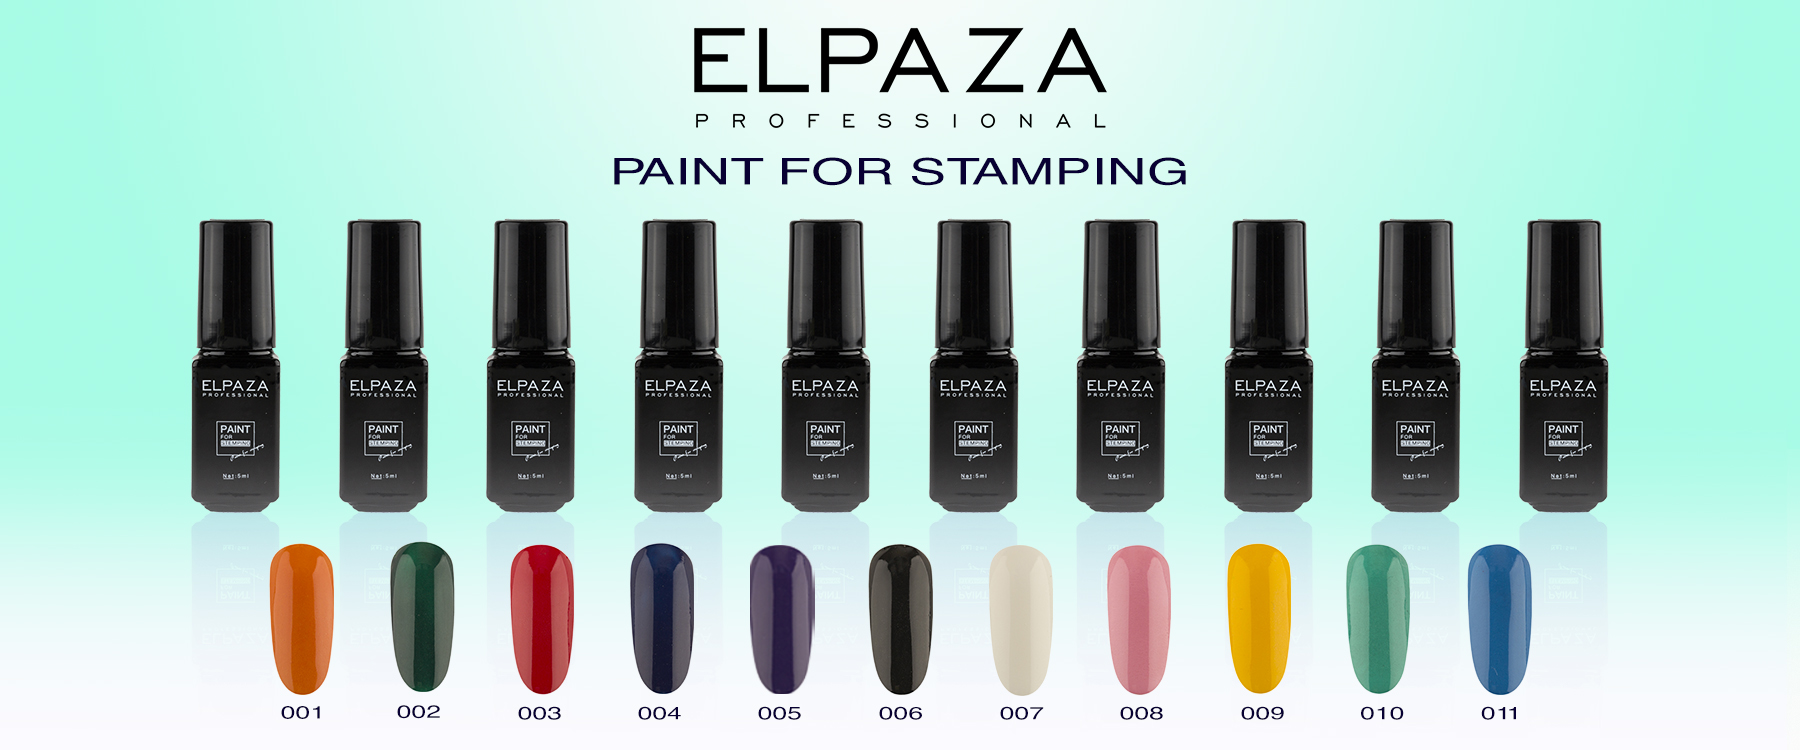 ELPAZA Paint for stamping